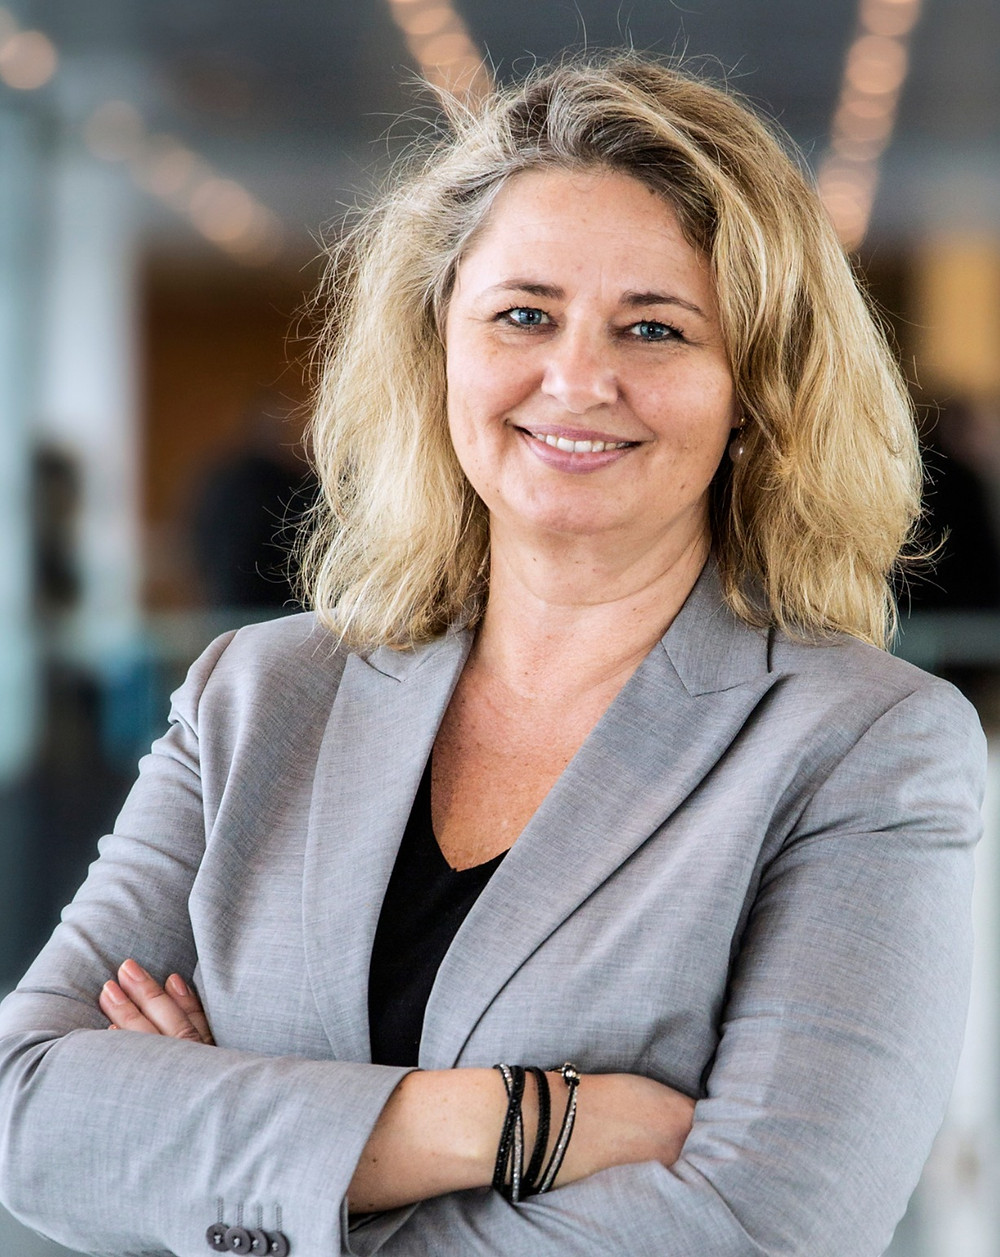 Annette Stube, former Head of Sustainability at Maersk Group and a board member at Fortum OYJ